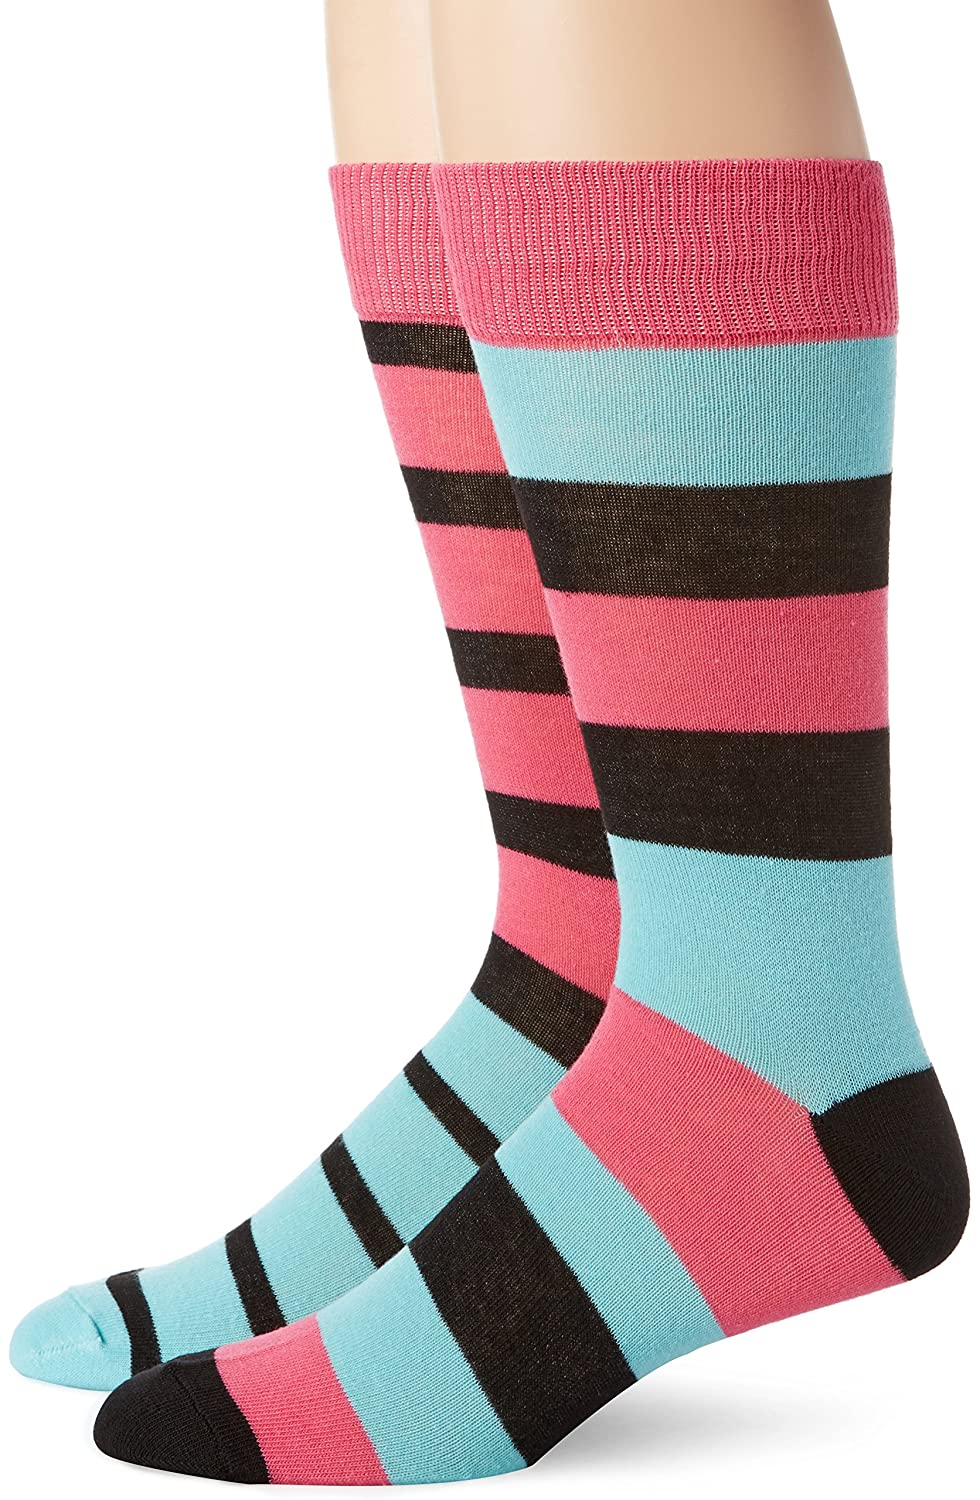 English Laundry Mens 2 Pack Rugby Stripe Crew Socks Black Shoe Size 6 1//2-12 English Laundry Mens Socks EL80362TC